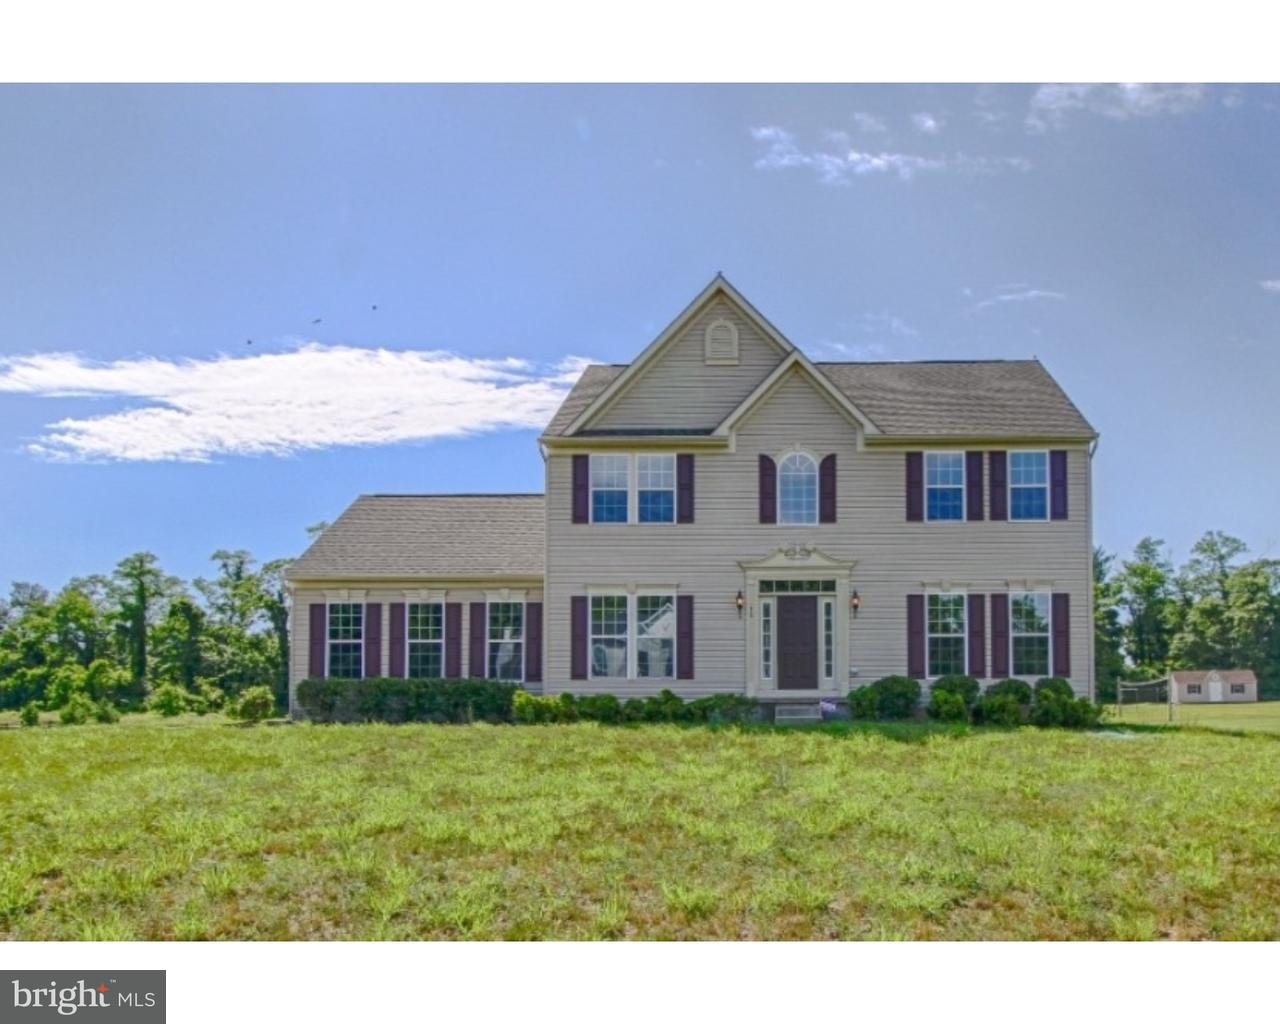 238 NEW SWEDEN ROAD, Woolwich Township, NJ, 08085, MLS # 1001482630 ...